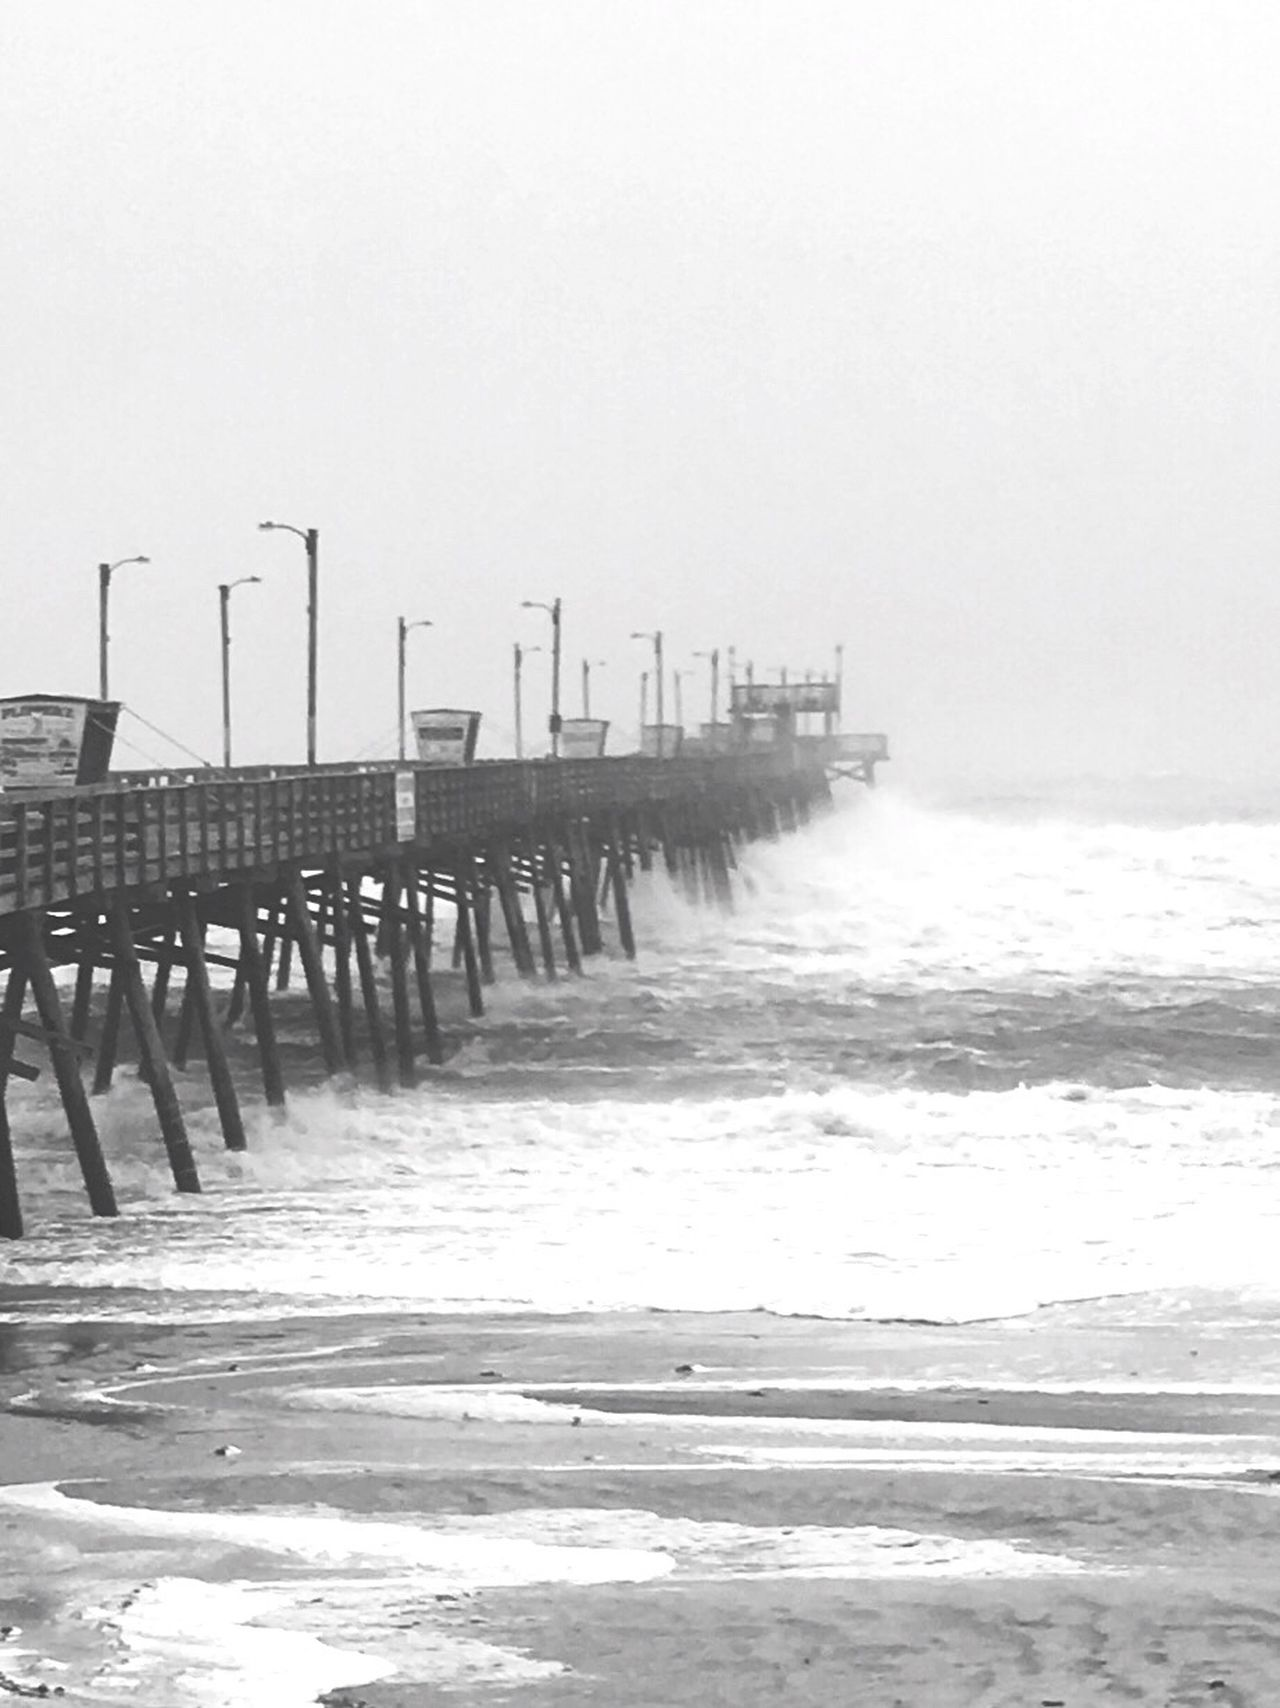 Hurricane Pier Storm Naturesfury Surf Shore Beach Tide North Carolina Emeraldisle Water Sea Ocean Atlantic Ocean Blackandwhite Man Made Object No People